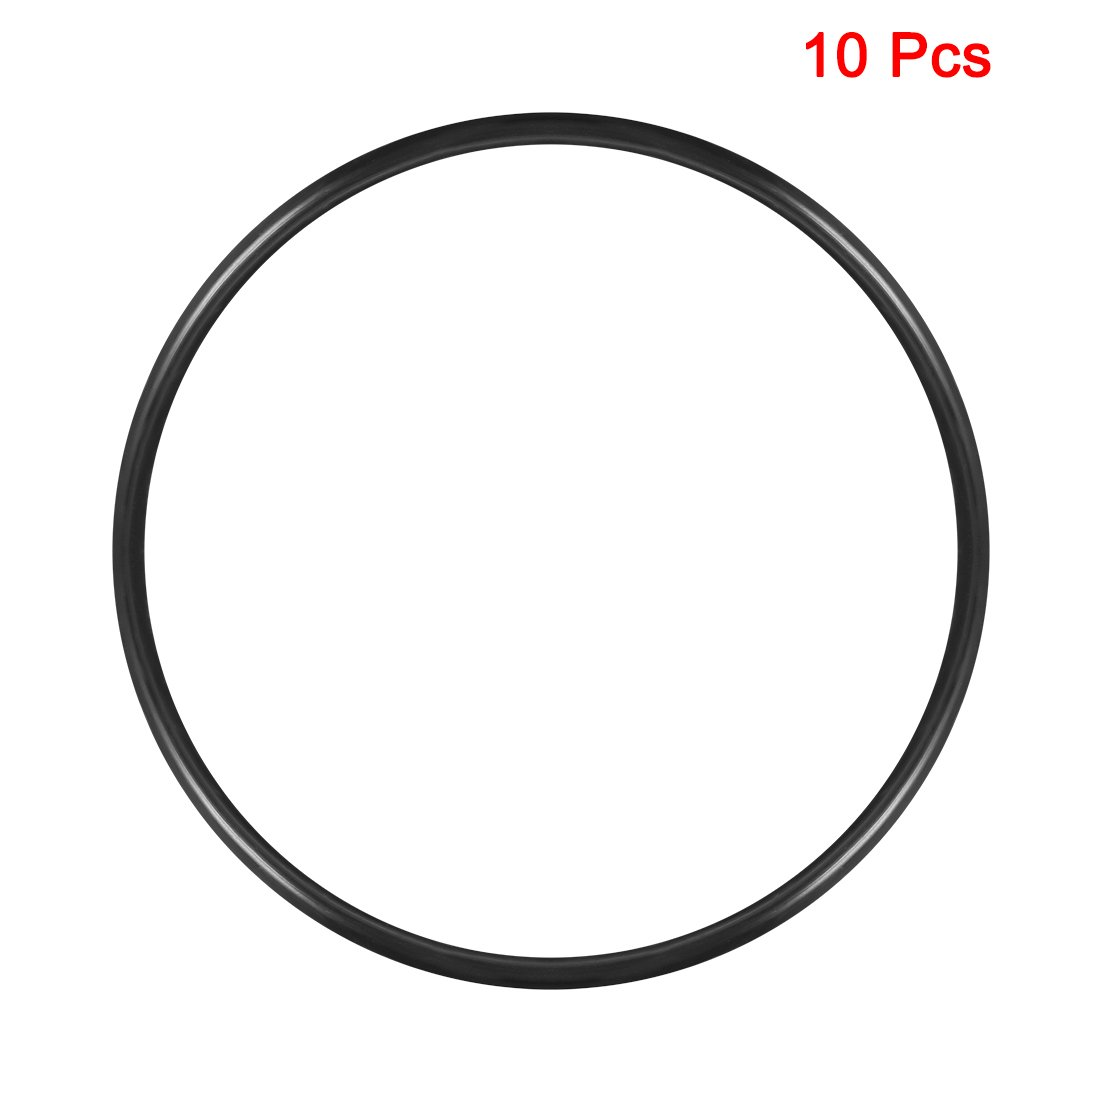 Round Seal Gasket Pack of 10 135mm Inner Diameter uxcell O-Rings Nitrile Rubber 5mm Width 145mm OD